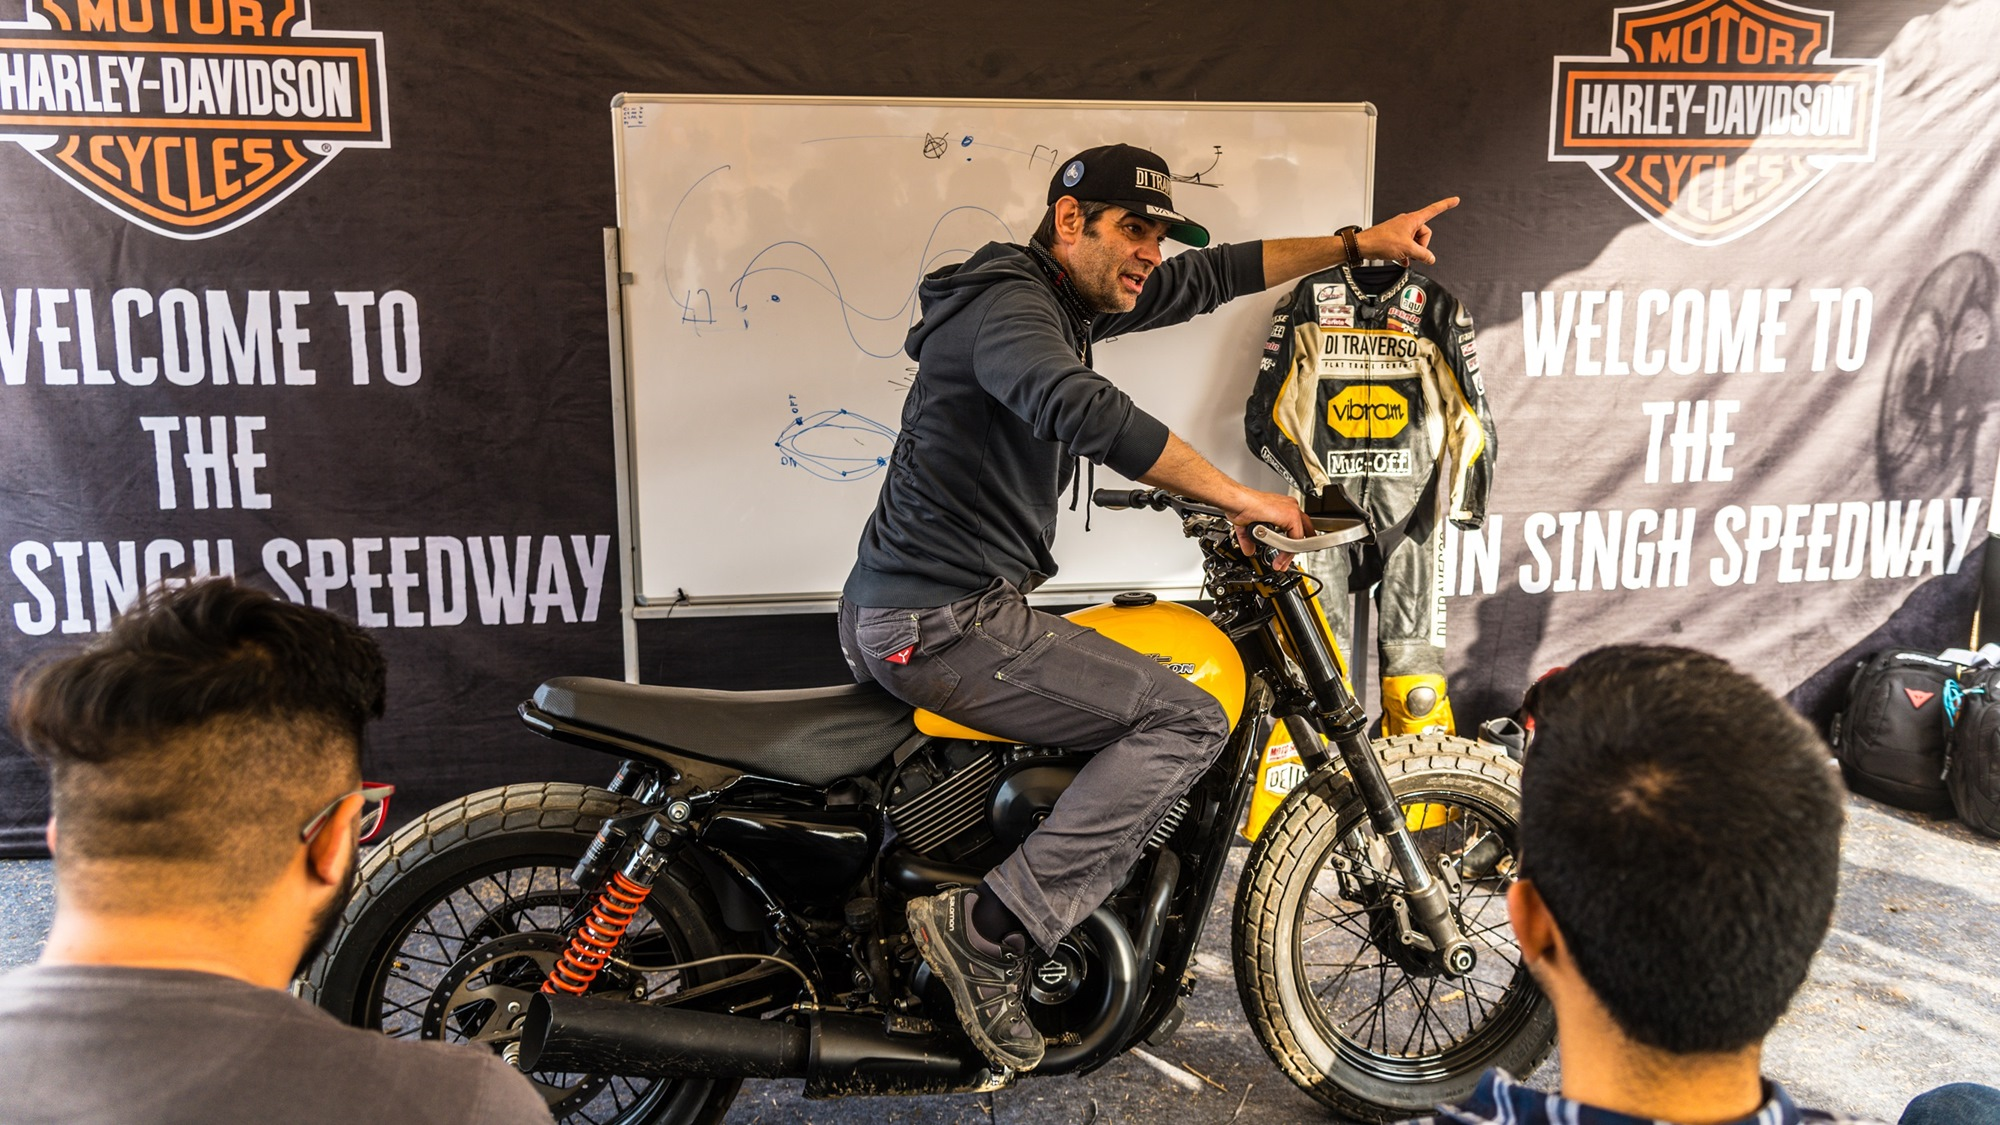 Harley Davidson Flat Track experience in India with Marco Belli